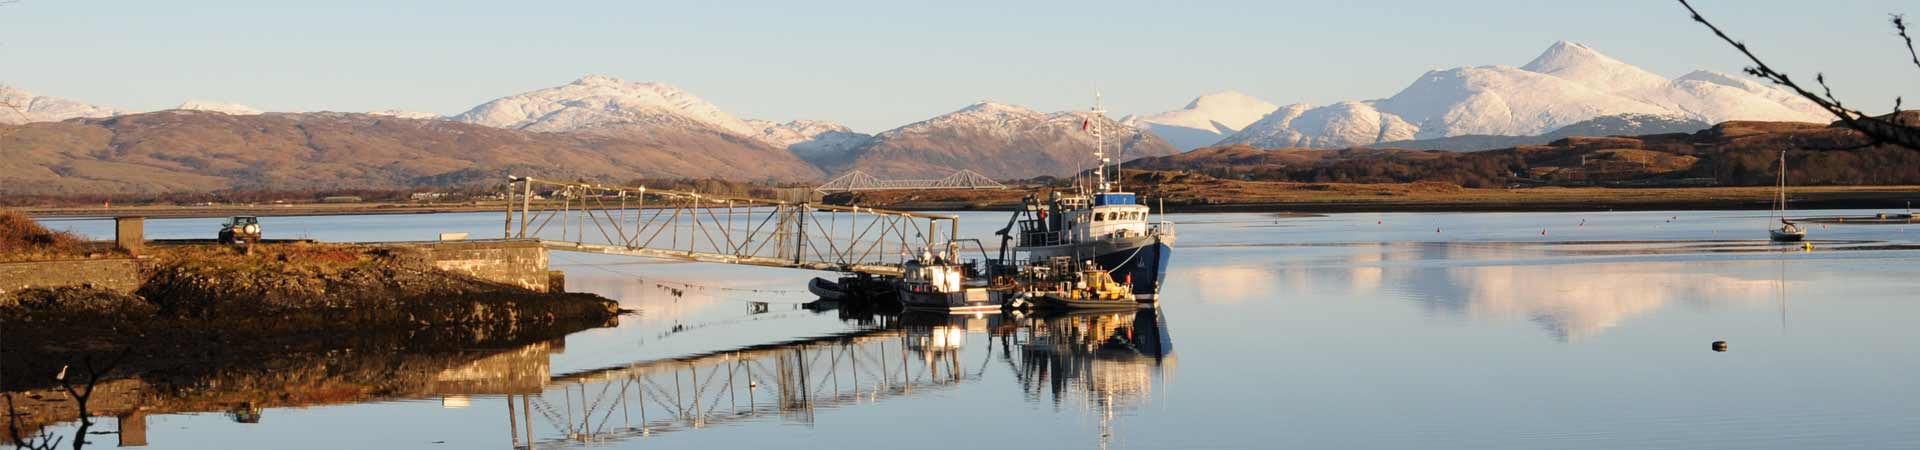 Image showing our pontoon with both vessels and a dive boat tied up during late autumn with snowy mountains